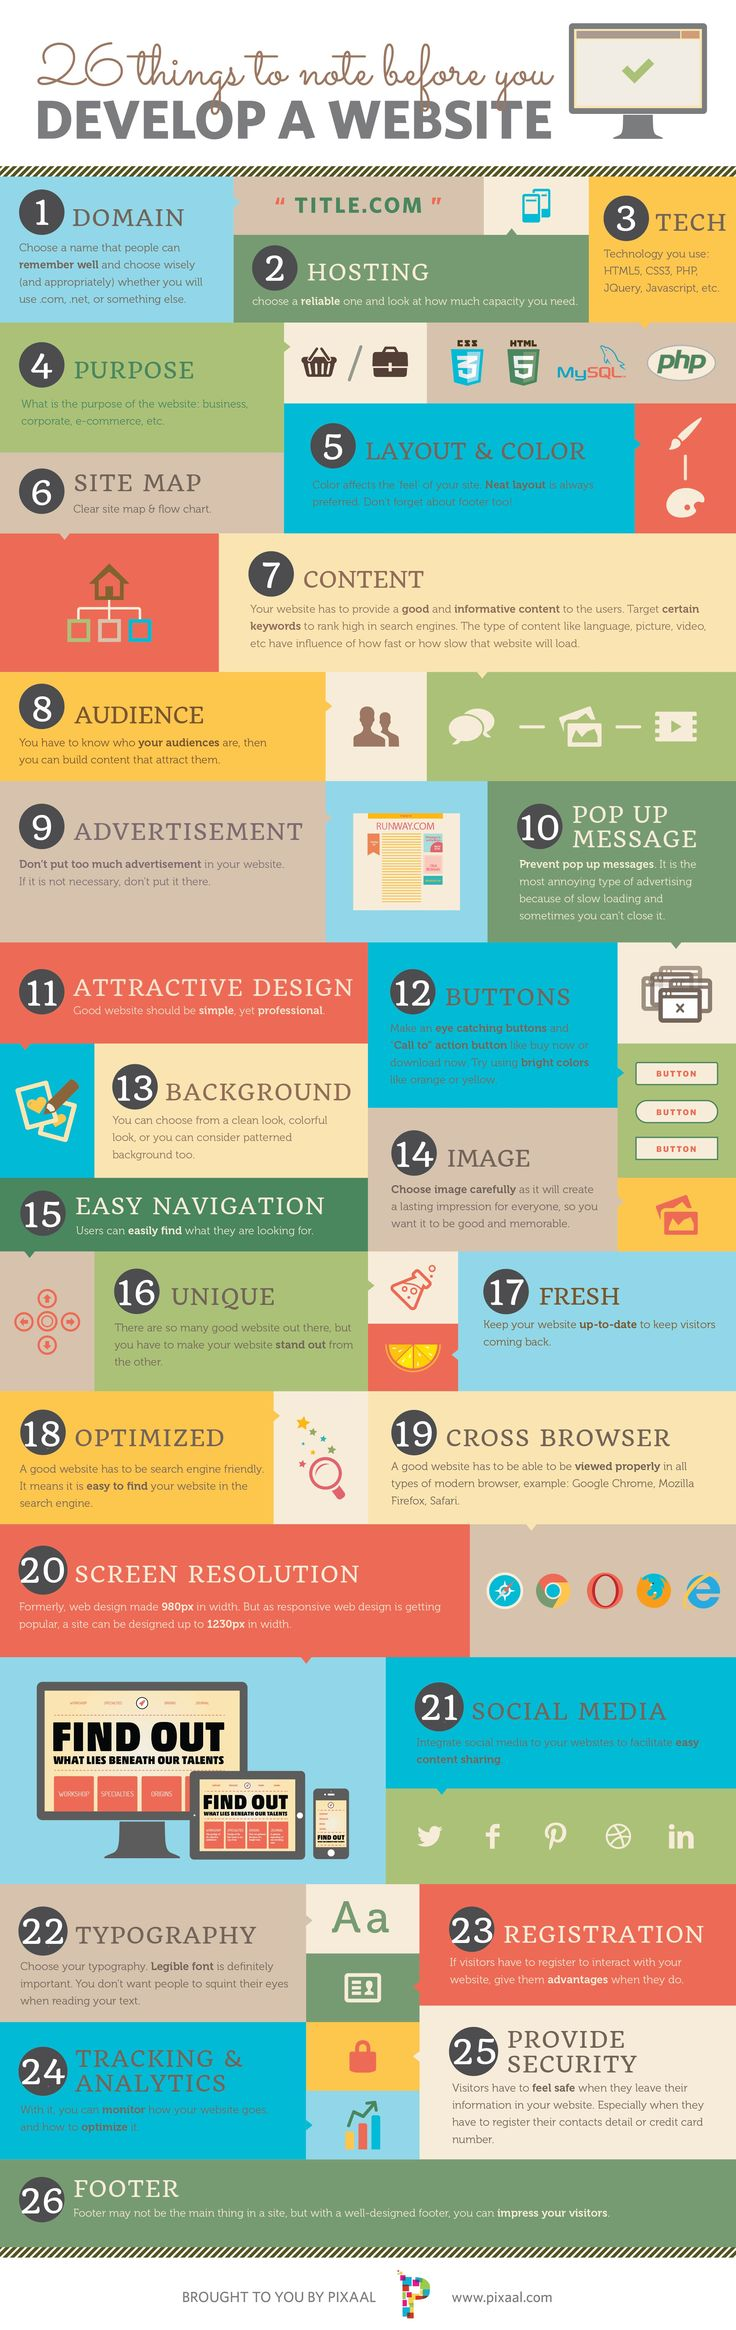 26 puntos cruciales en el desarrollo de un sitio web :: 26 Things to Note Before You Develop a Website